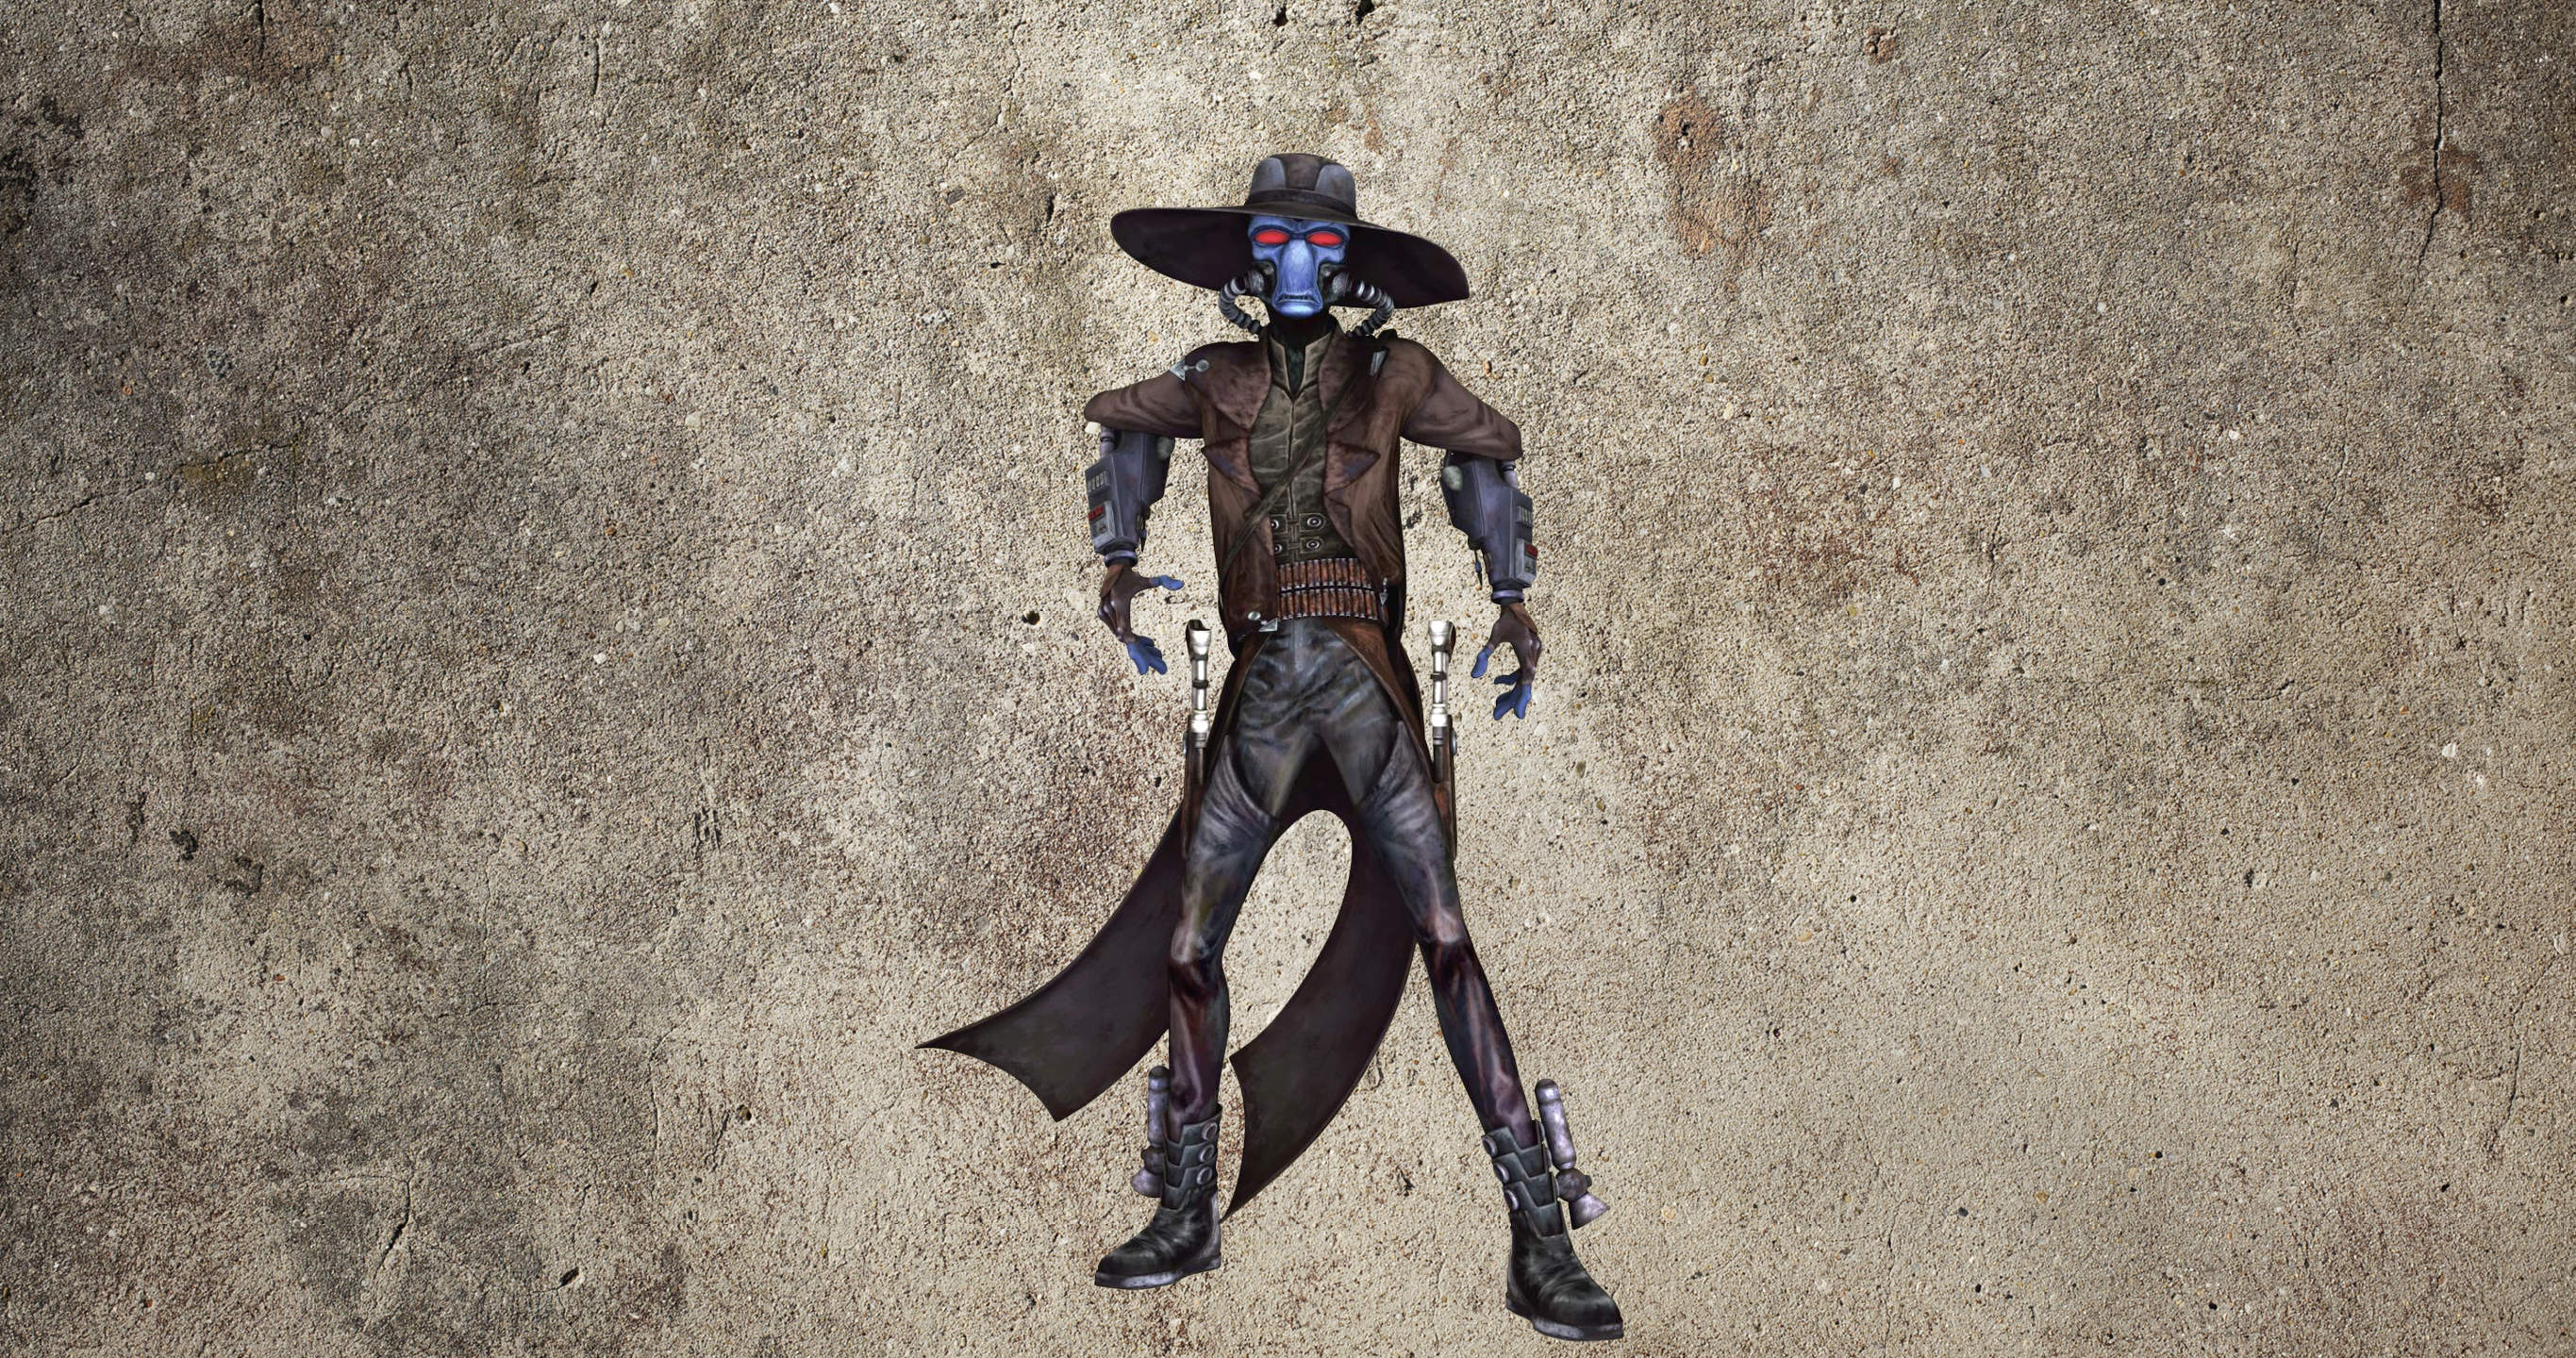 Cad Bane/Snoke Deck Analysis